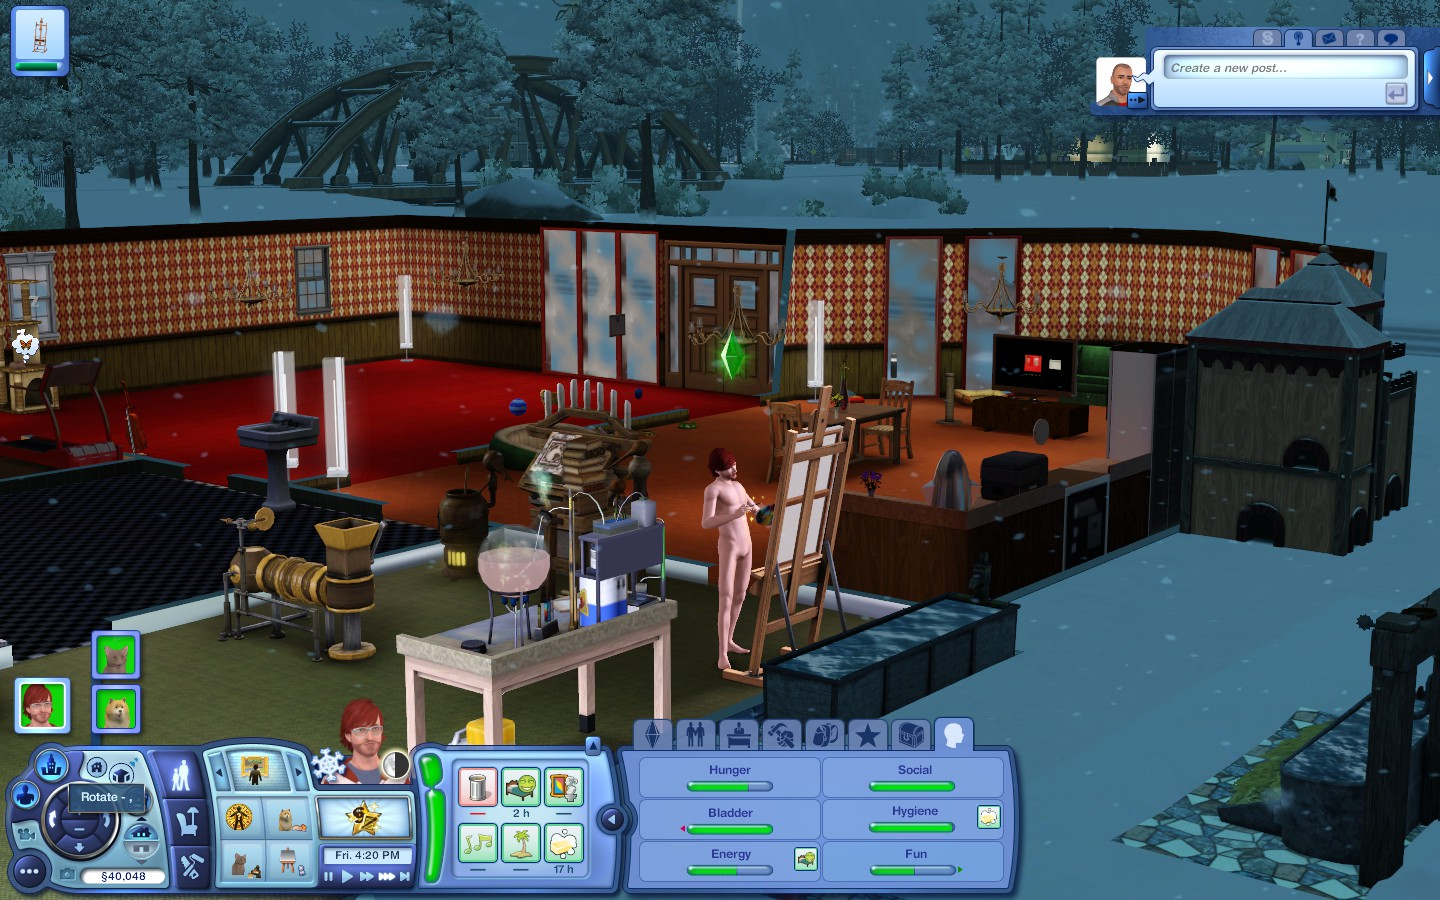 sims 3] the game tends to crash, freezes, and bugs  - Answer HQ